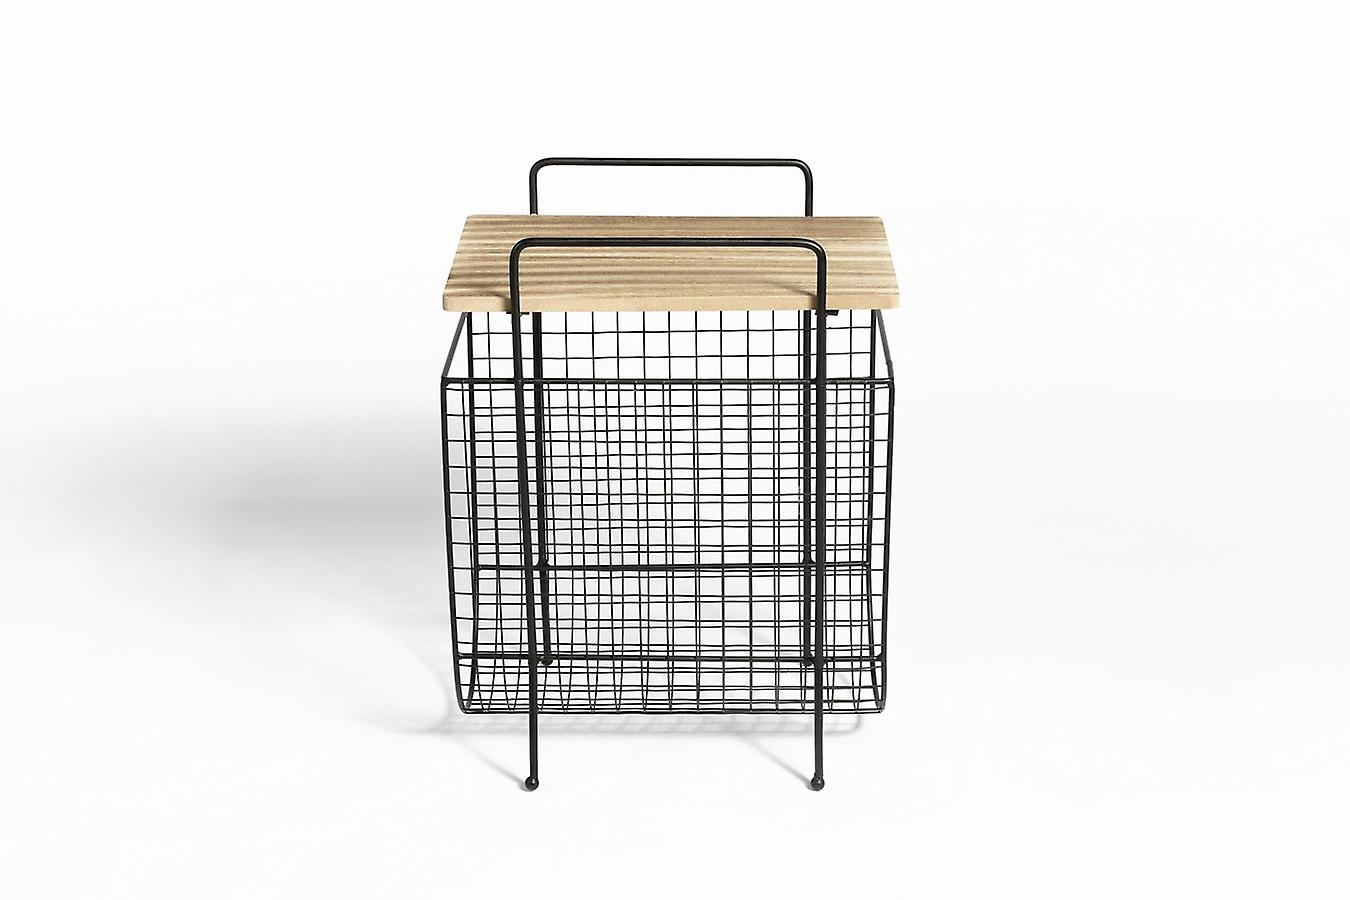 LIFA LIVING side table with newspaper stand, magazine holder in black metal and MDF wood, vintage magazine stand with additional storage, 40 x 29 x 54 cm